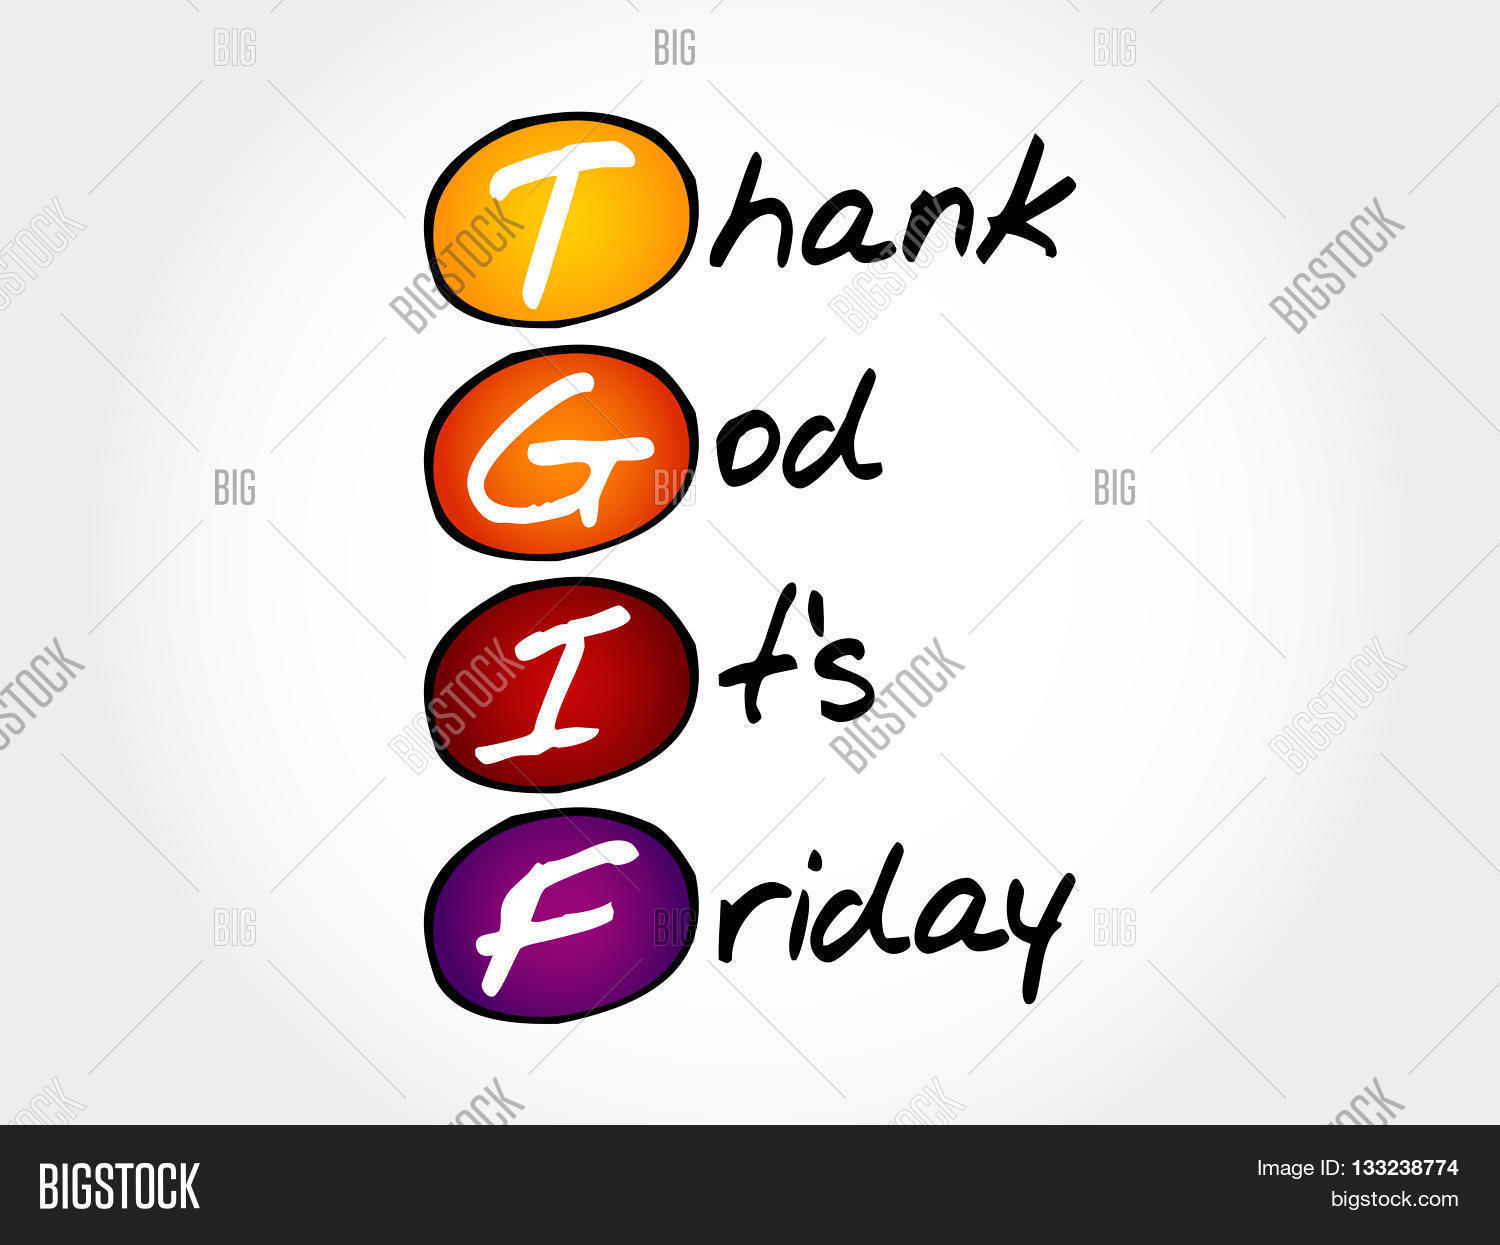 weekend,date,fun,tgif,enthusiasm,day,business,wellness,its,acronym,god,celebration,motivational,calendar,auction,recreation,funny,background,remember,vacation,post,tag,concept,happiness,holiday,friday,reminder,word,thank,best,announce,abbreviation,smile,sunday,lifestyle,term,great,motivation,poster,week,memo,crossword,note,message,notification,happy,announcement,relaxation